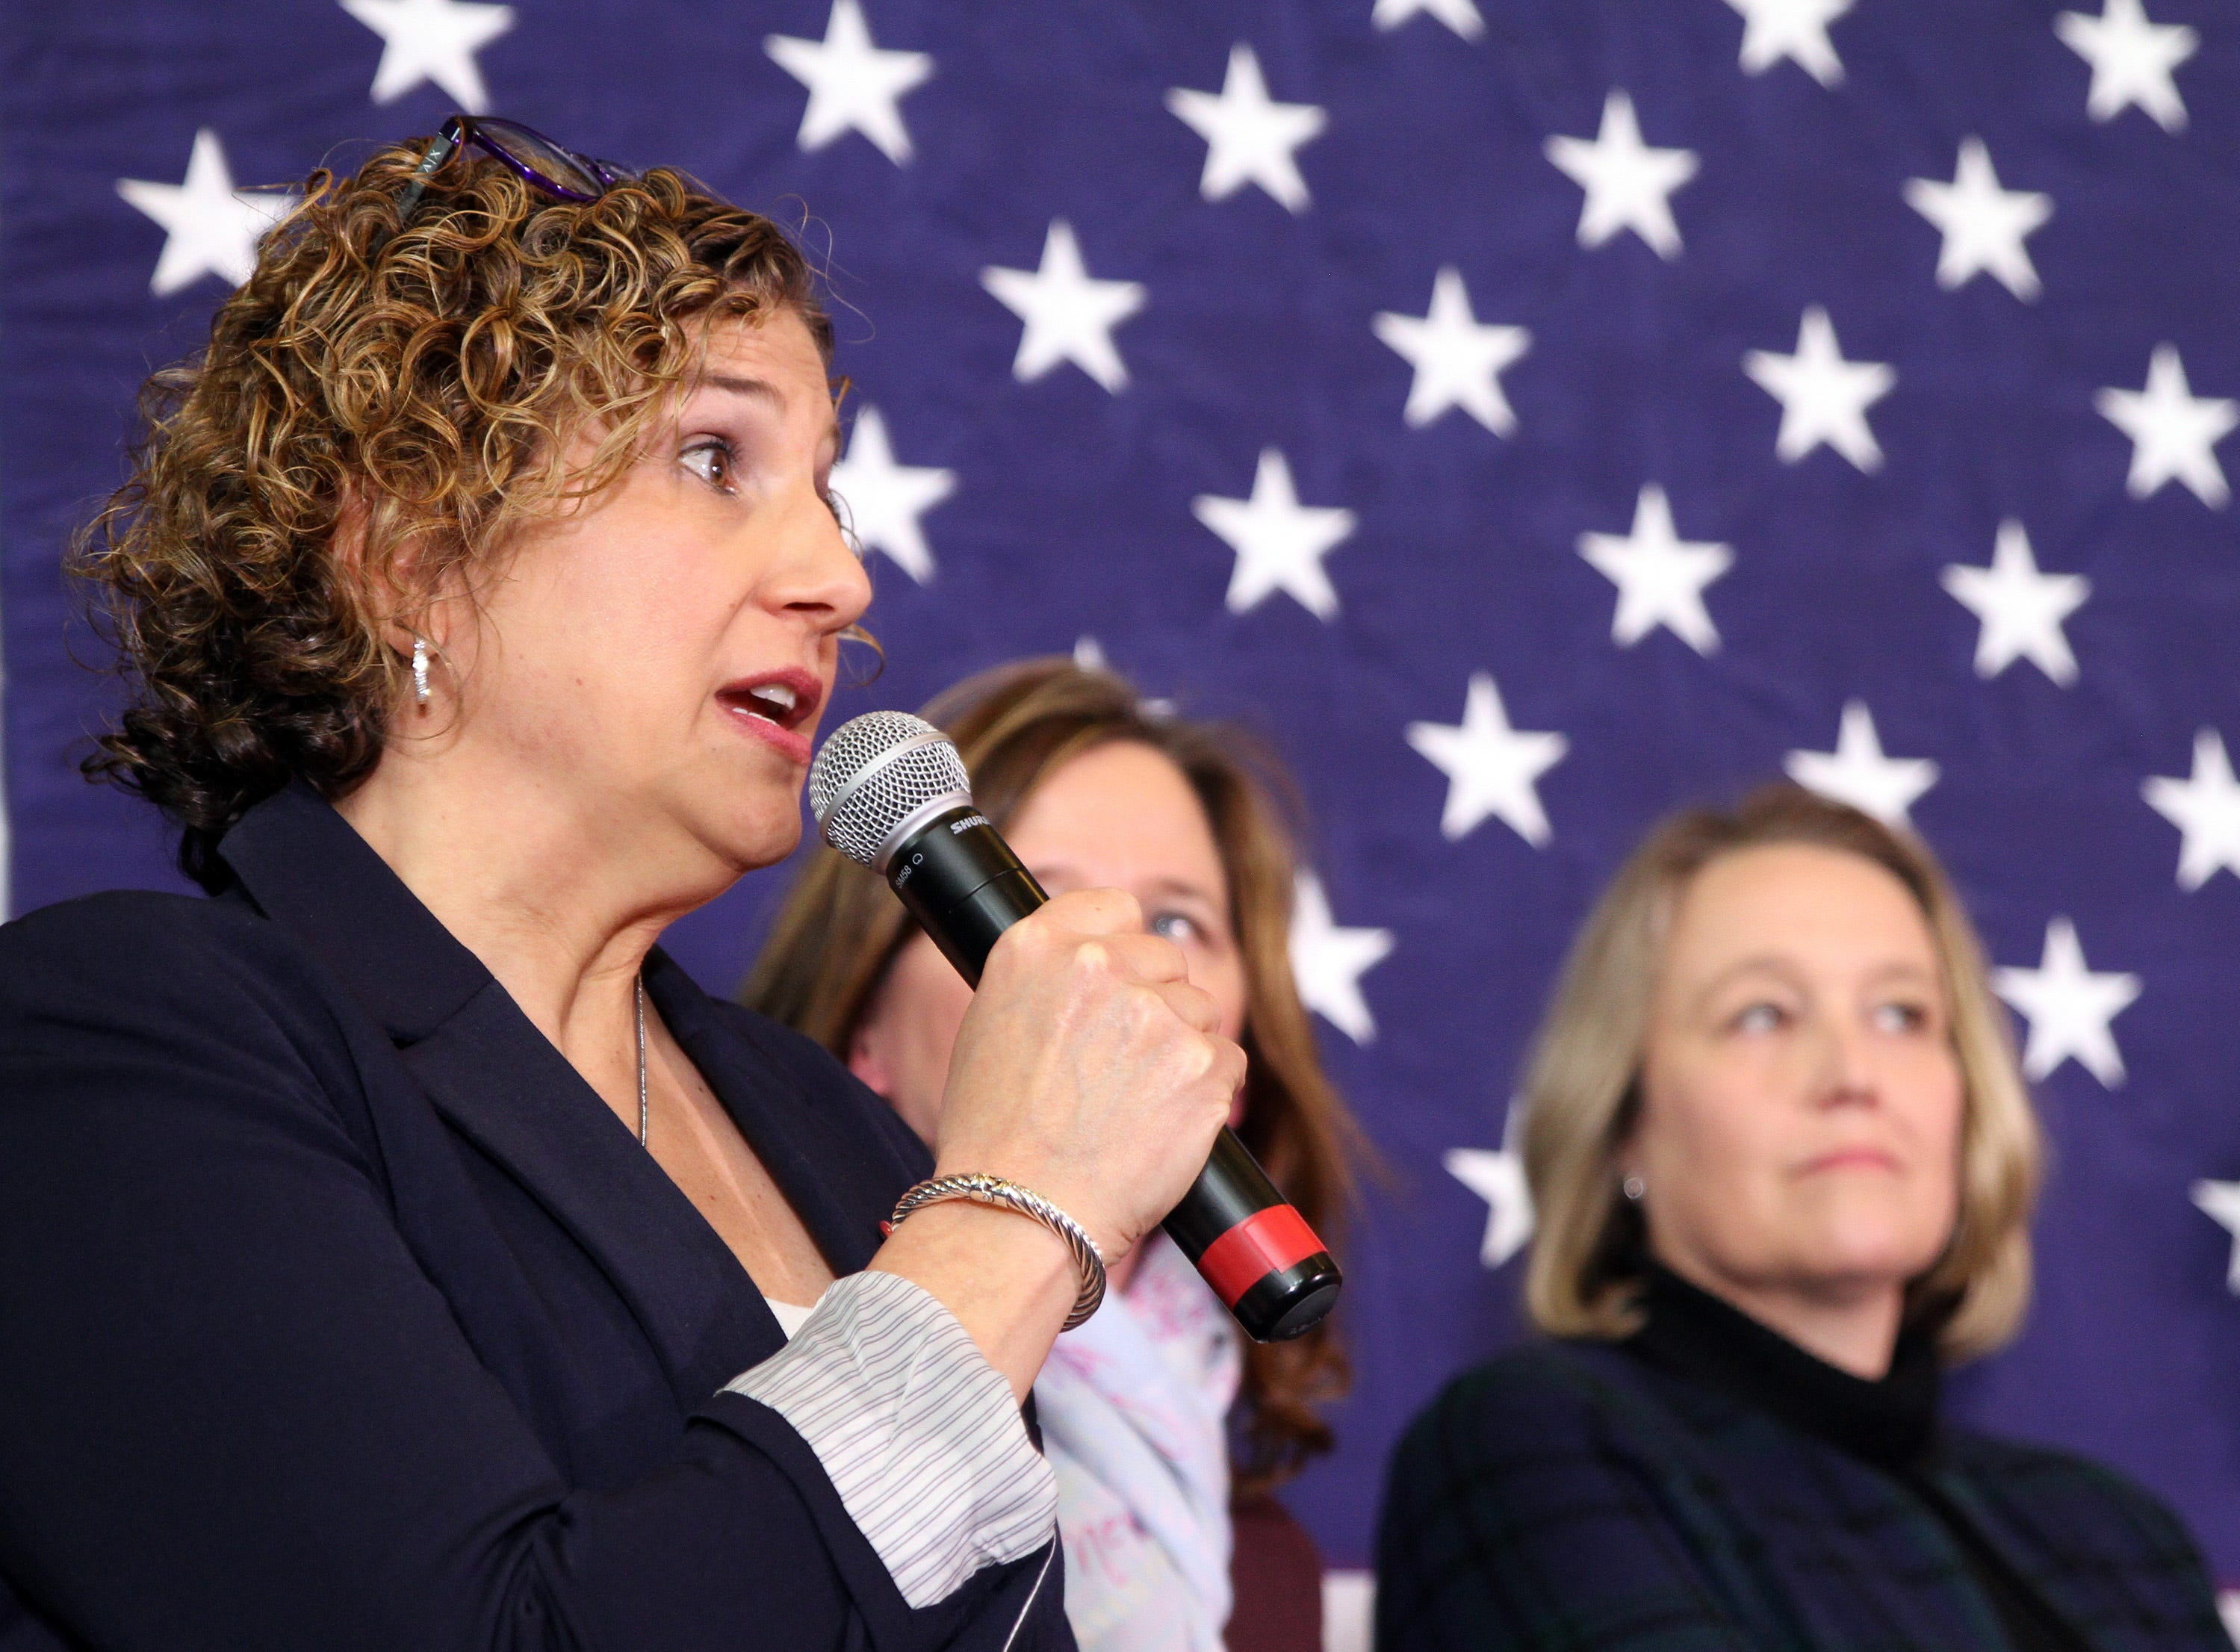 State Sen. Claire Celsi speaks about cuts to education with possible presidential candidate U.S. Sen. Elizabeth Warren of Massachusetts visits Iowa and makes a stop for a conversation with women leaders at The District Venue at 1350 SW Vintage Parkway on Sunday, Jan. 6, 2019, in Ankeny.